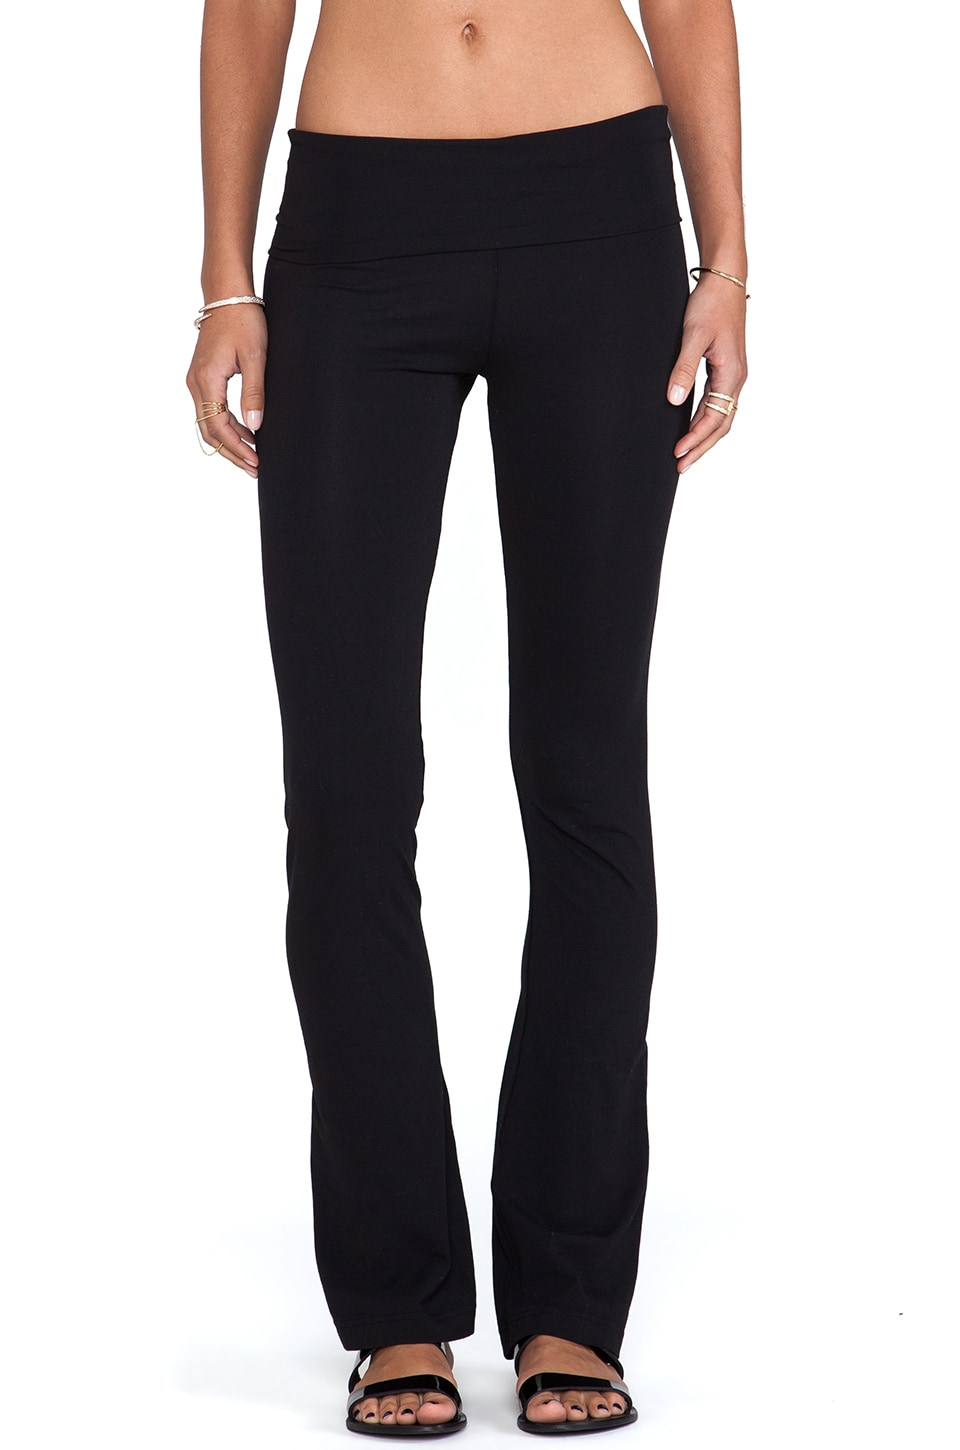 Bobi Flare Yoga Pant in Black